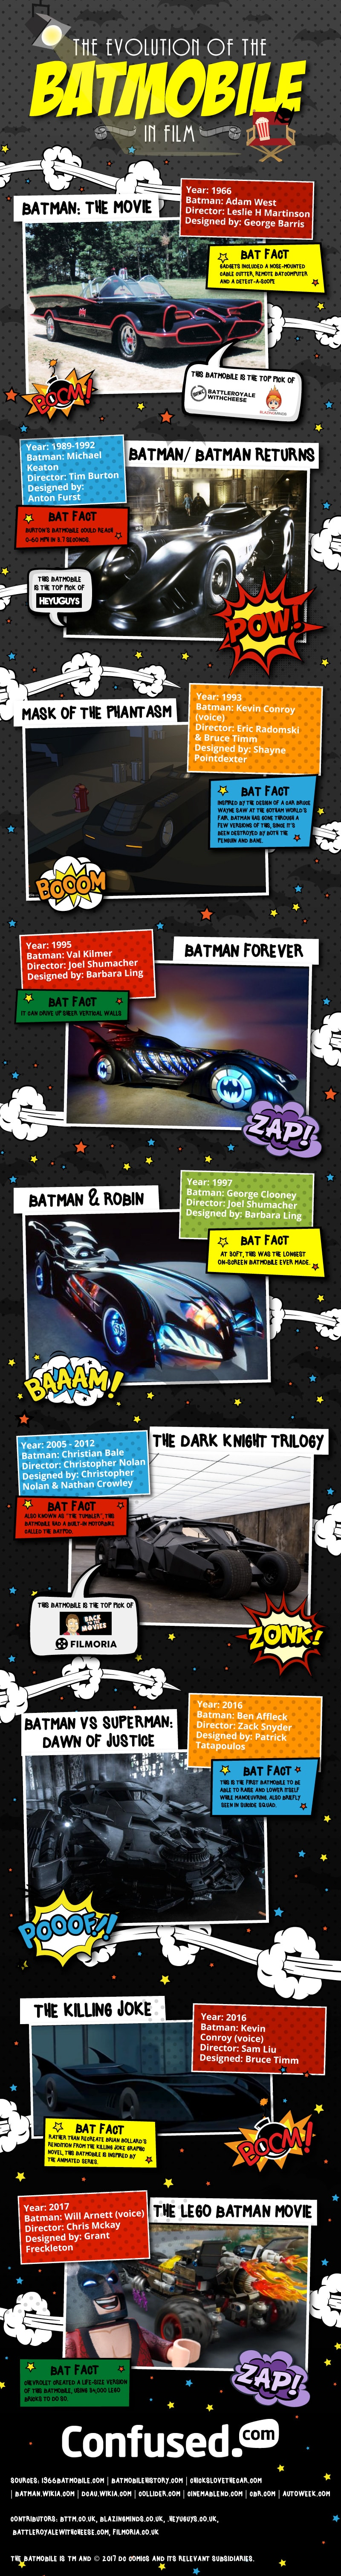 The evolution of the Batmobile in film